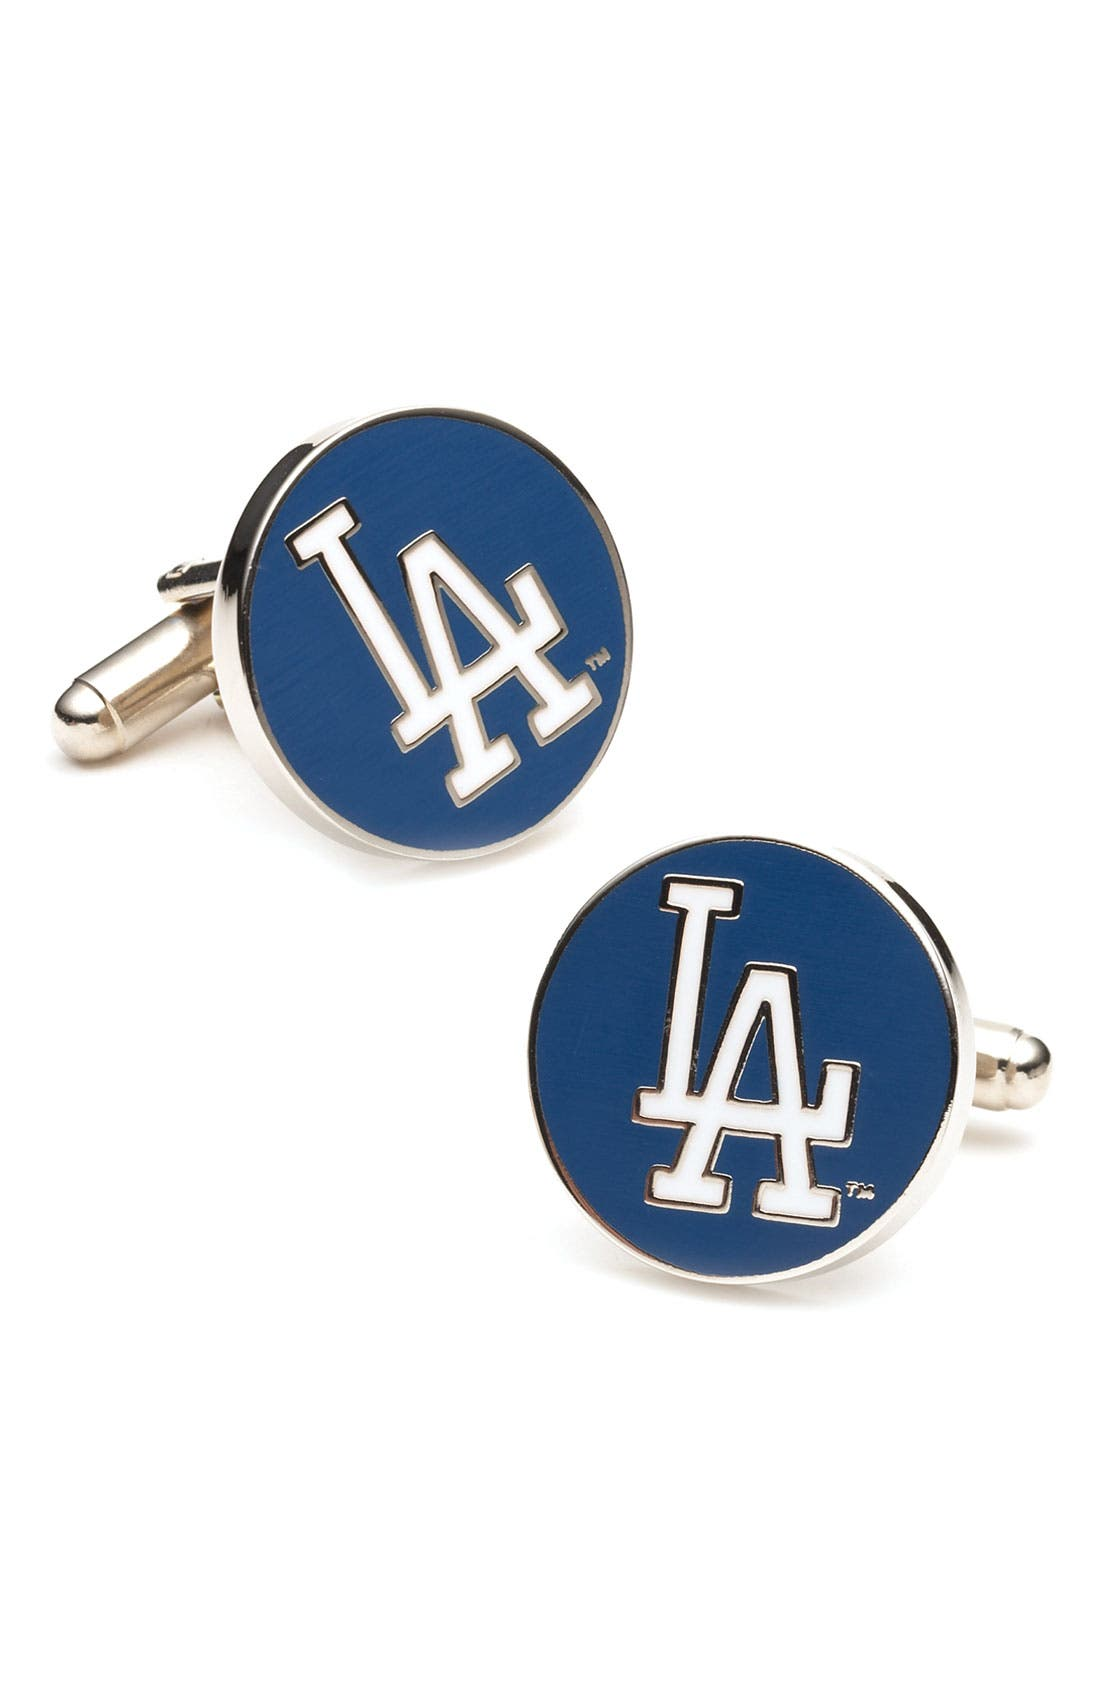 'Los Angeles Dodgers' Cuff Links,                             Main thumbnail 1, color,                             Blue/ White